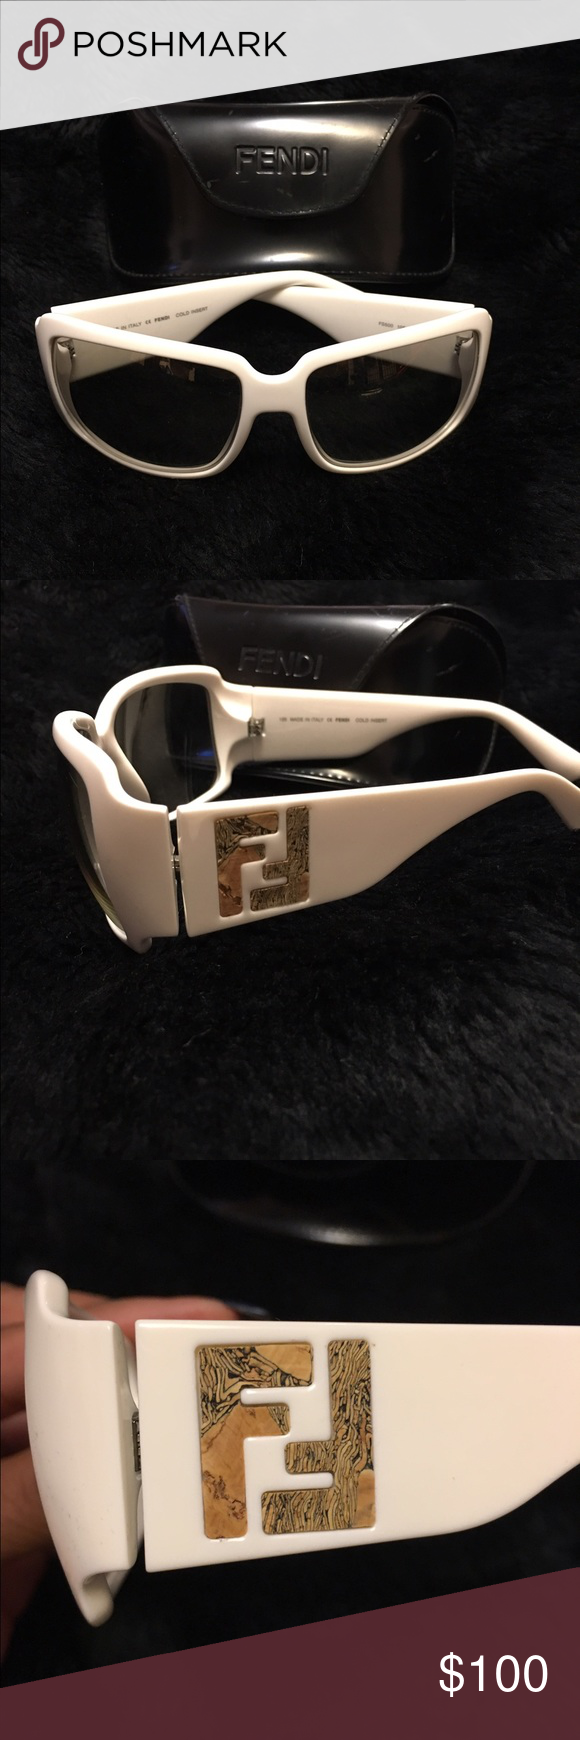 GENUINE Fendi Sunglasses White Fendi Cork Logo Sunglasses Fendi Accessories Glasses